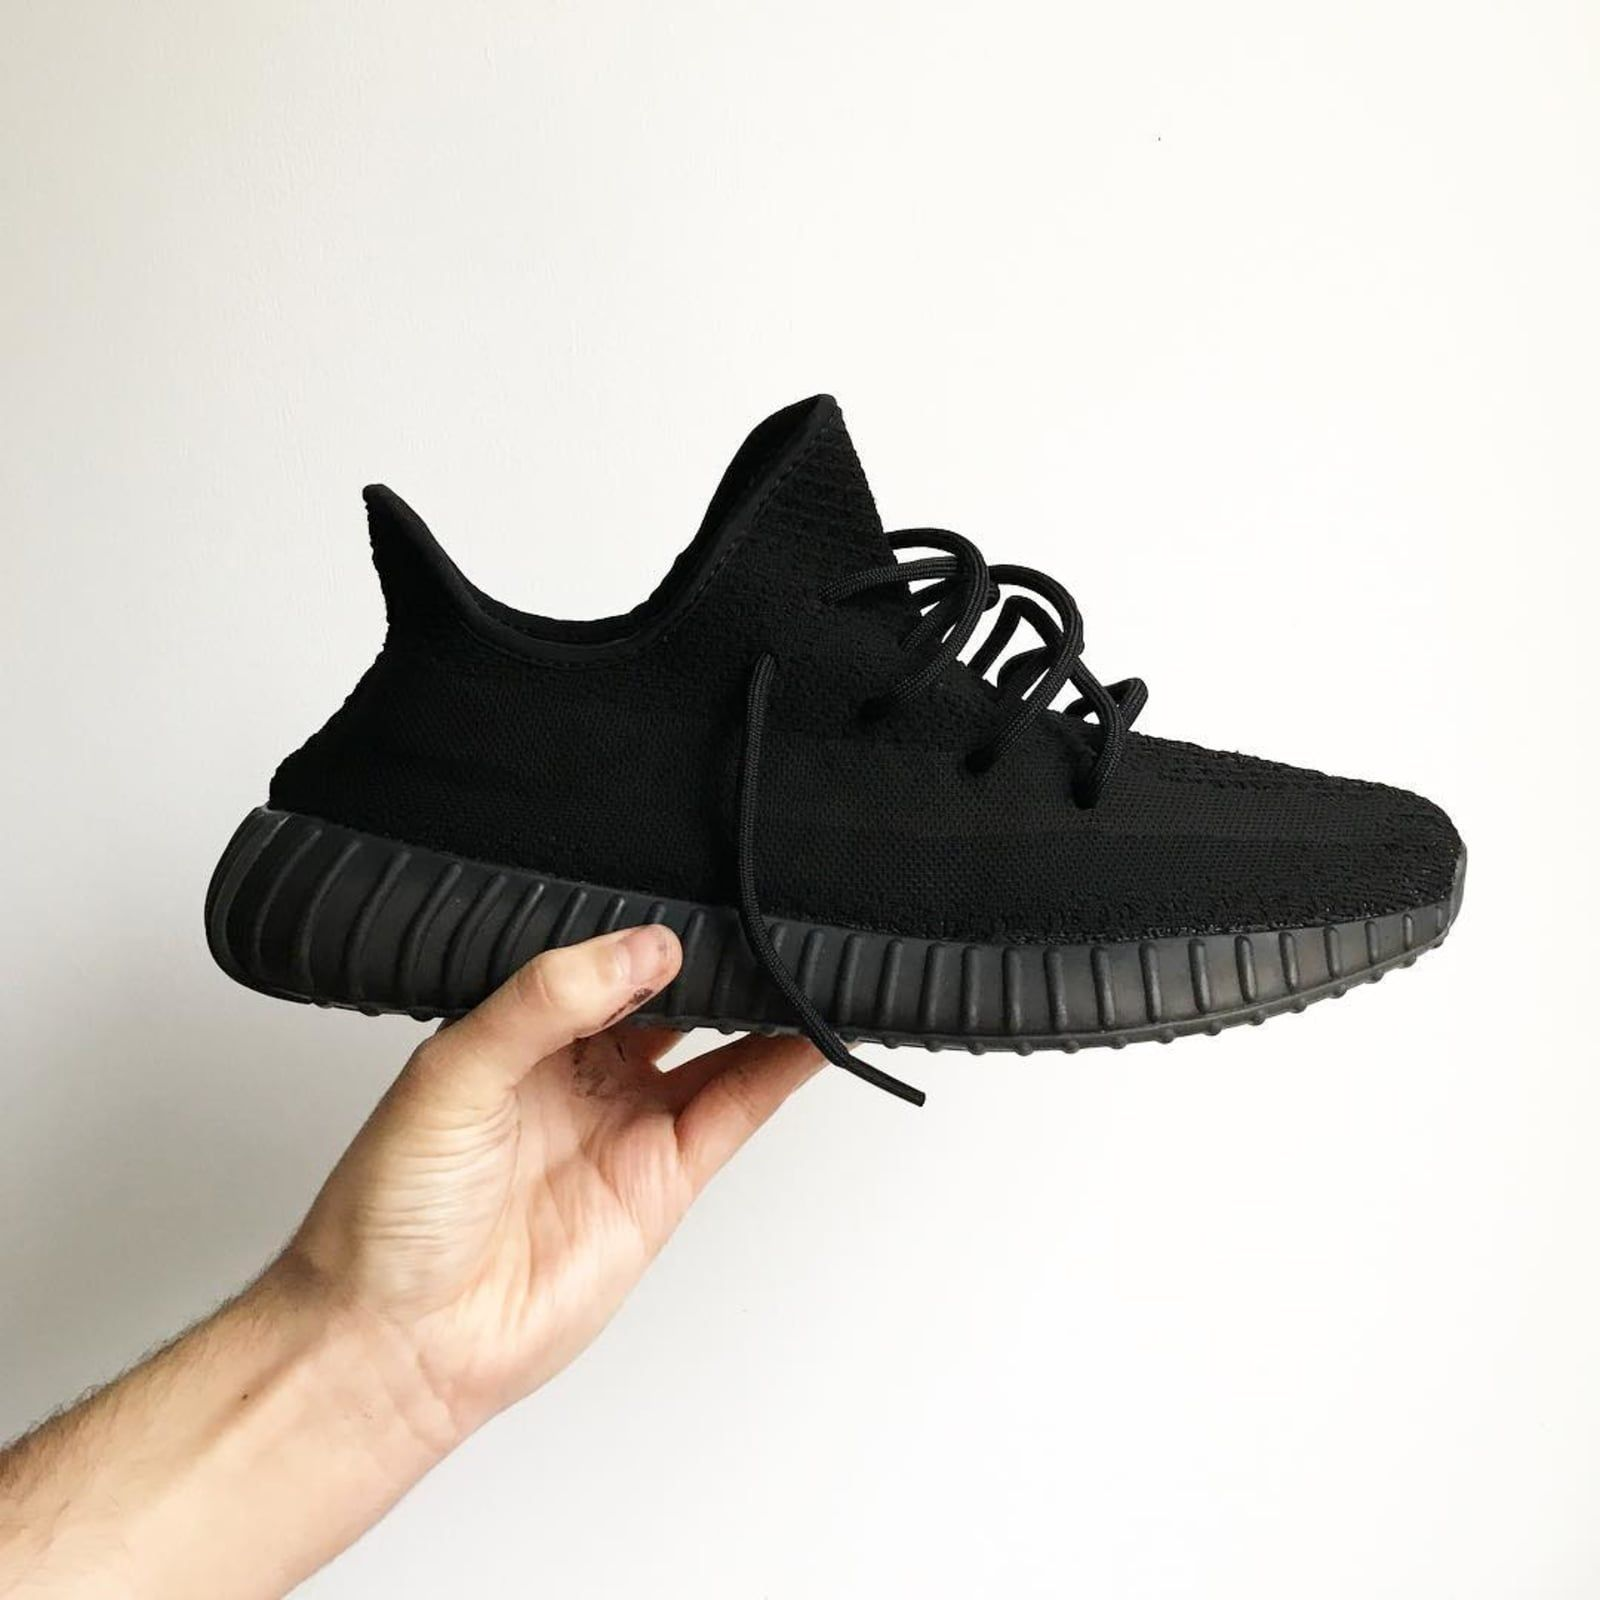 cf7ef013ffc Adidas Yeezy 350 Boost V2 Customs  Blackout by DavidZ Custom - The Best Adidas  Yeezy 350 Boost V2 Customs